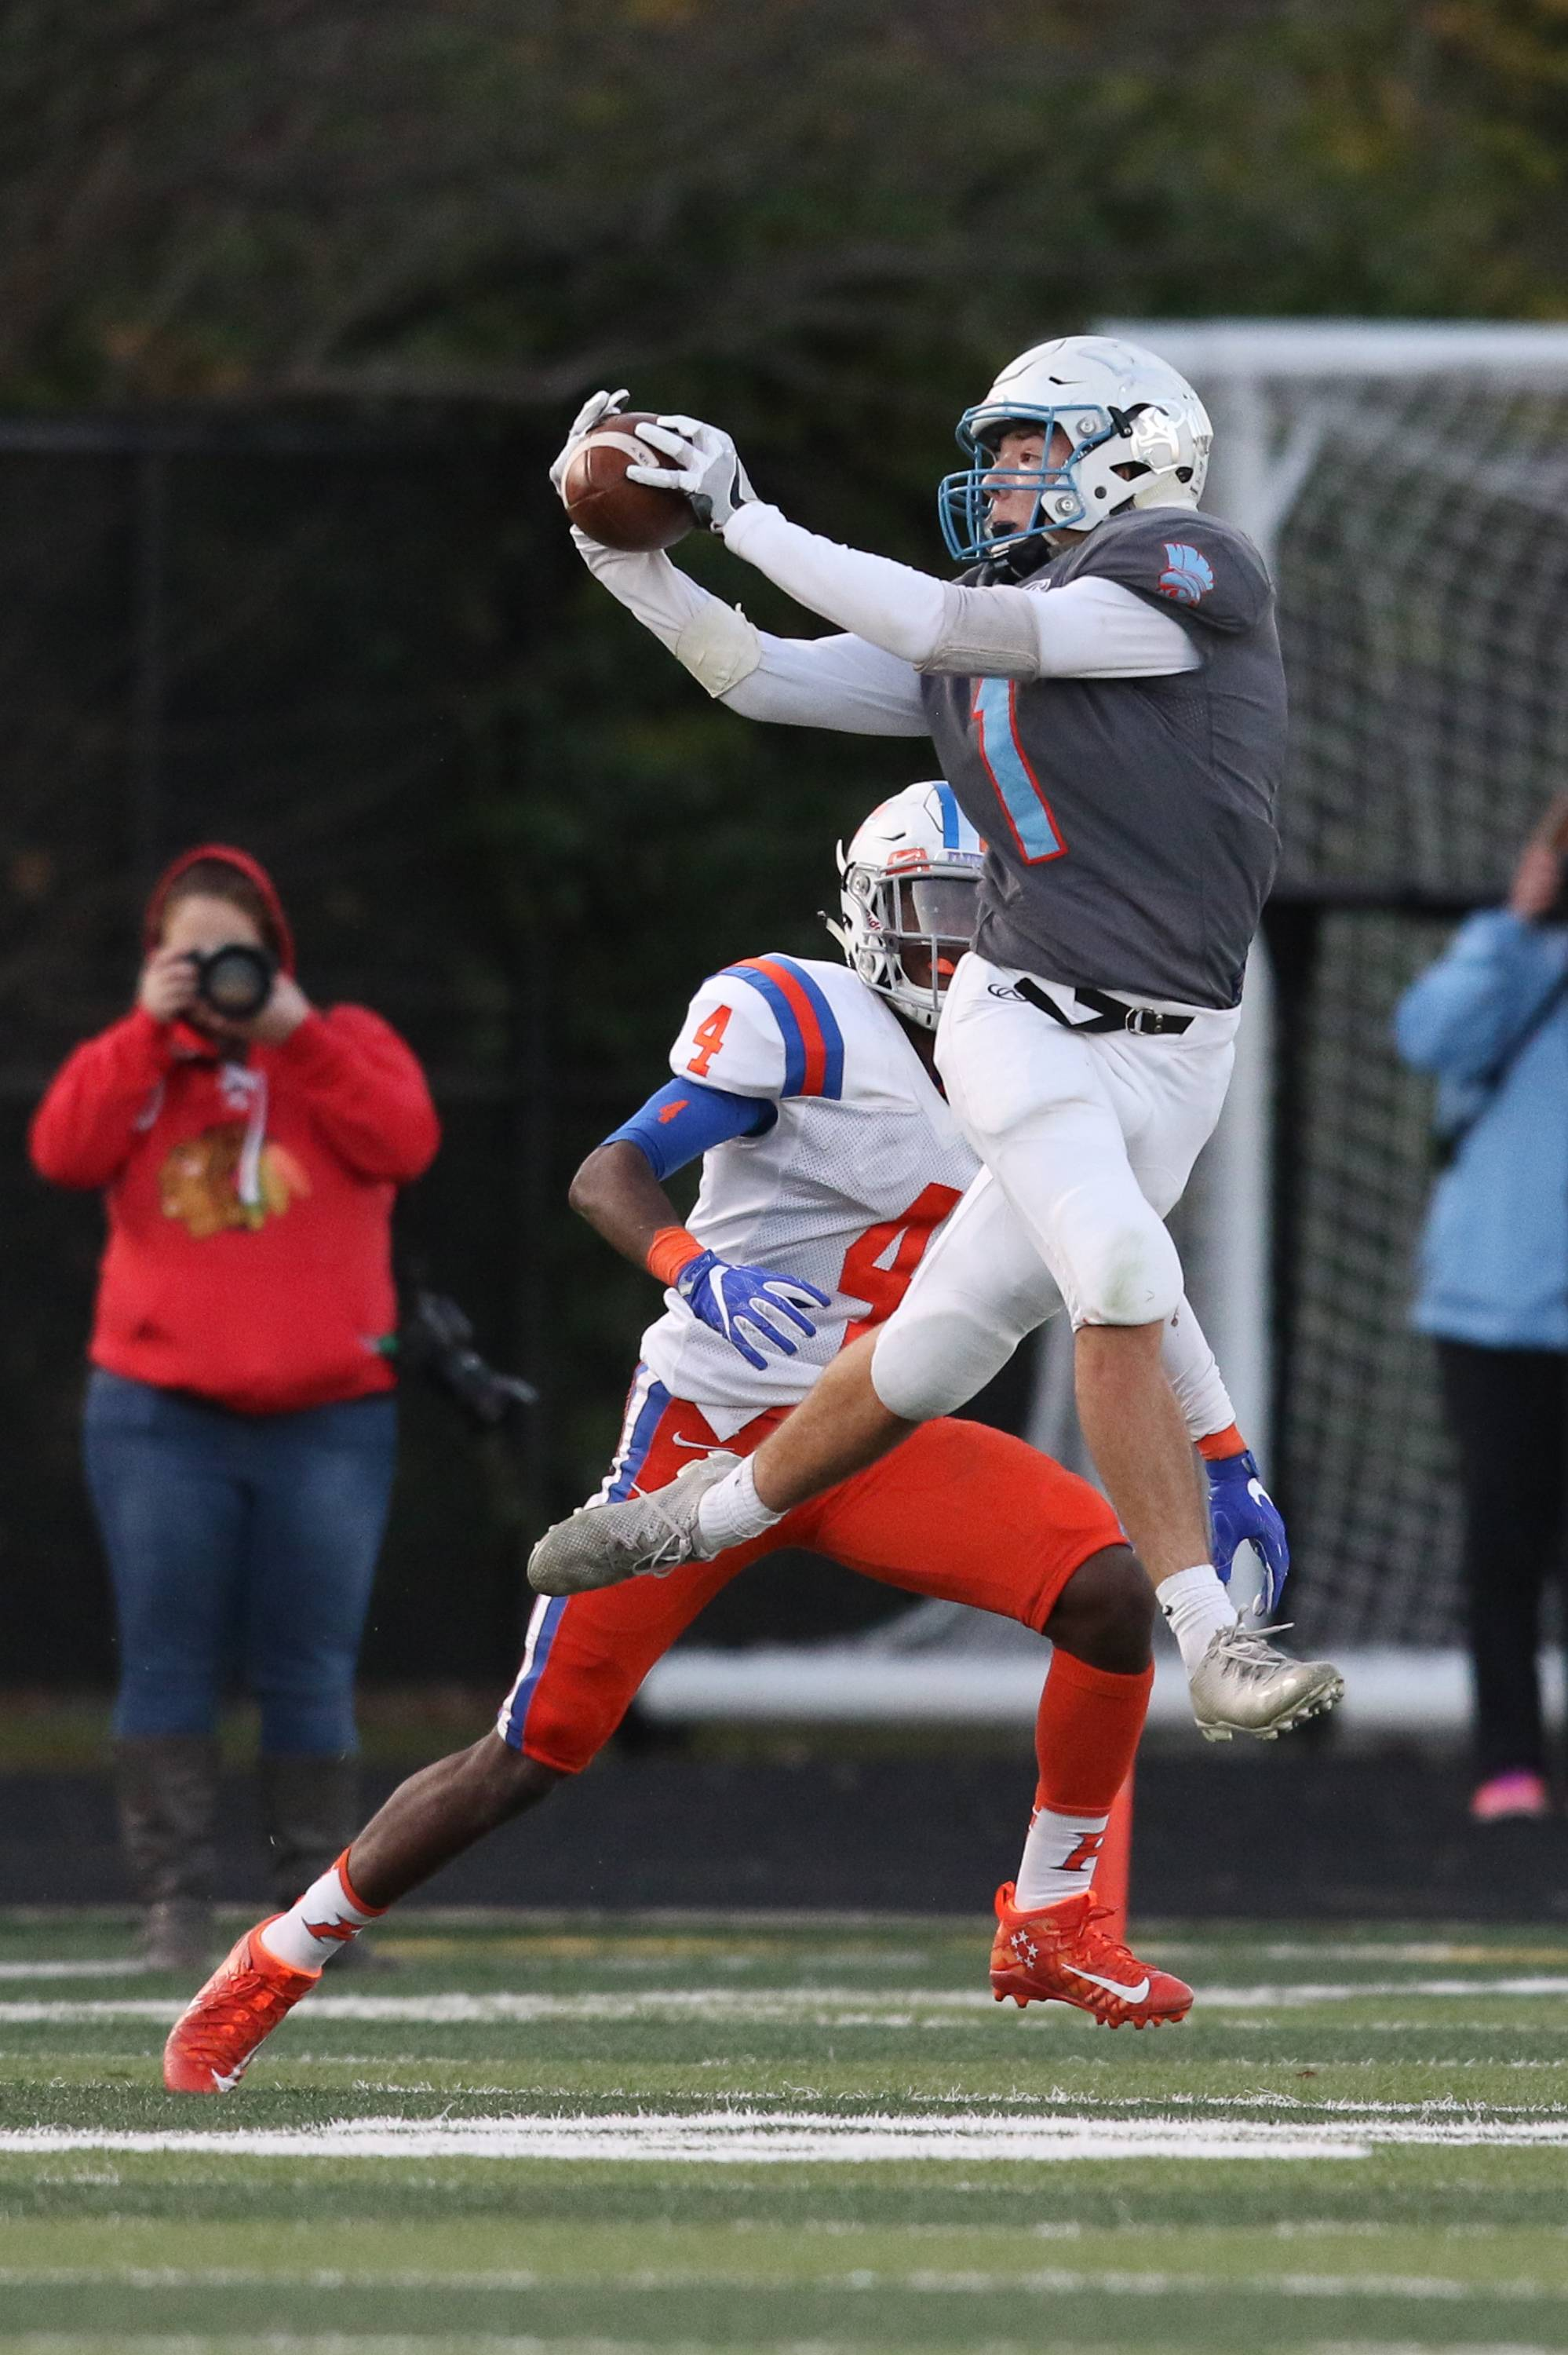 Willowbrook wide receiver Jonathan Kelso (1) makes a leaping reception against East St. Louis defensive back Jeff Thomas (4) during a 7A quarterfinal state playoff game at Willowbrook High School in Villa Park, IL on Saturday, November 12, 2016